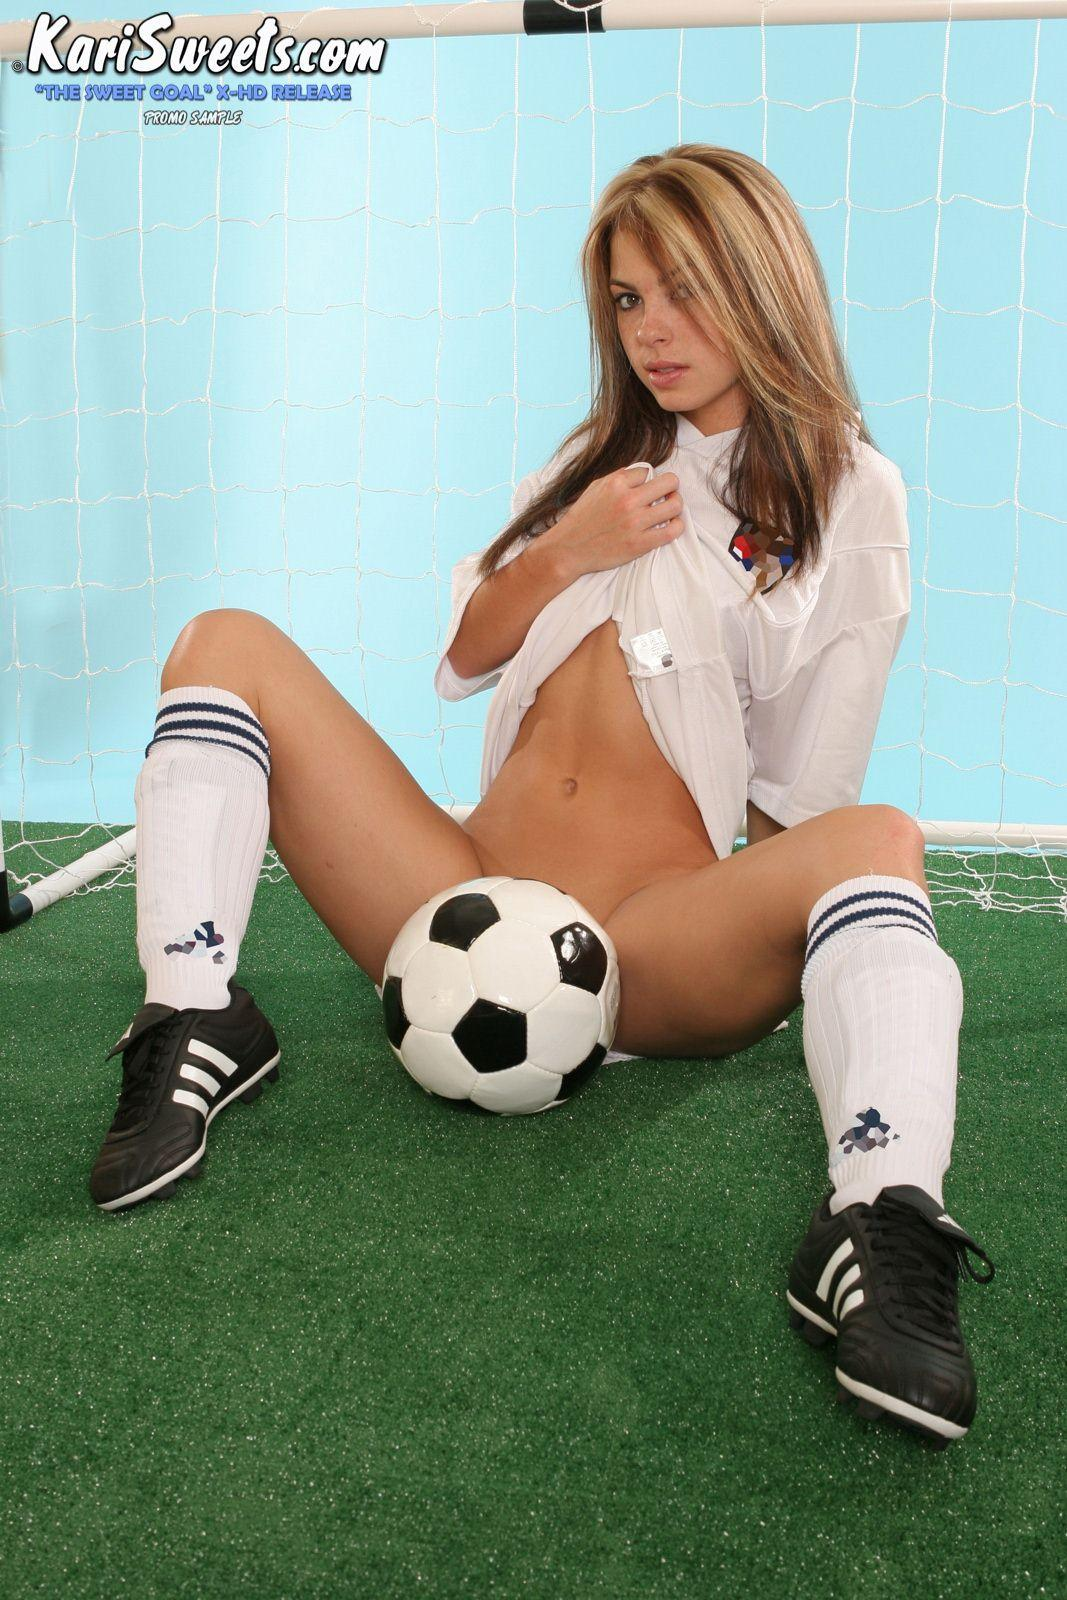 Hot bottomless girl spreads her legs and places a soccer ball between them